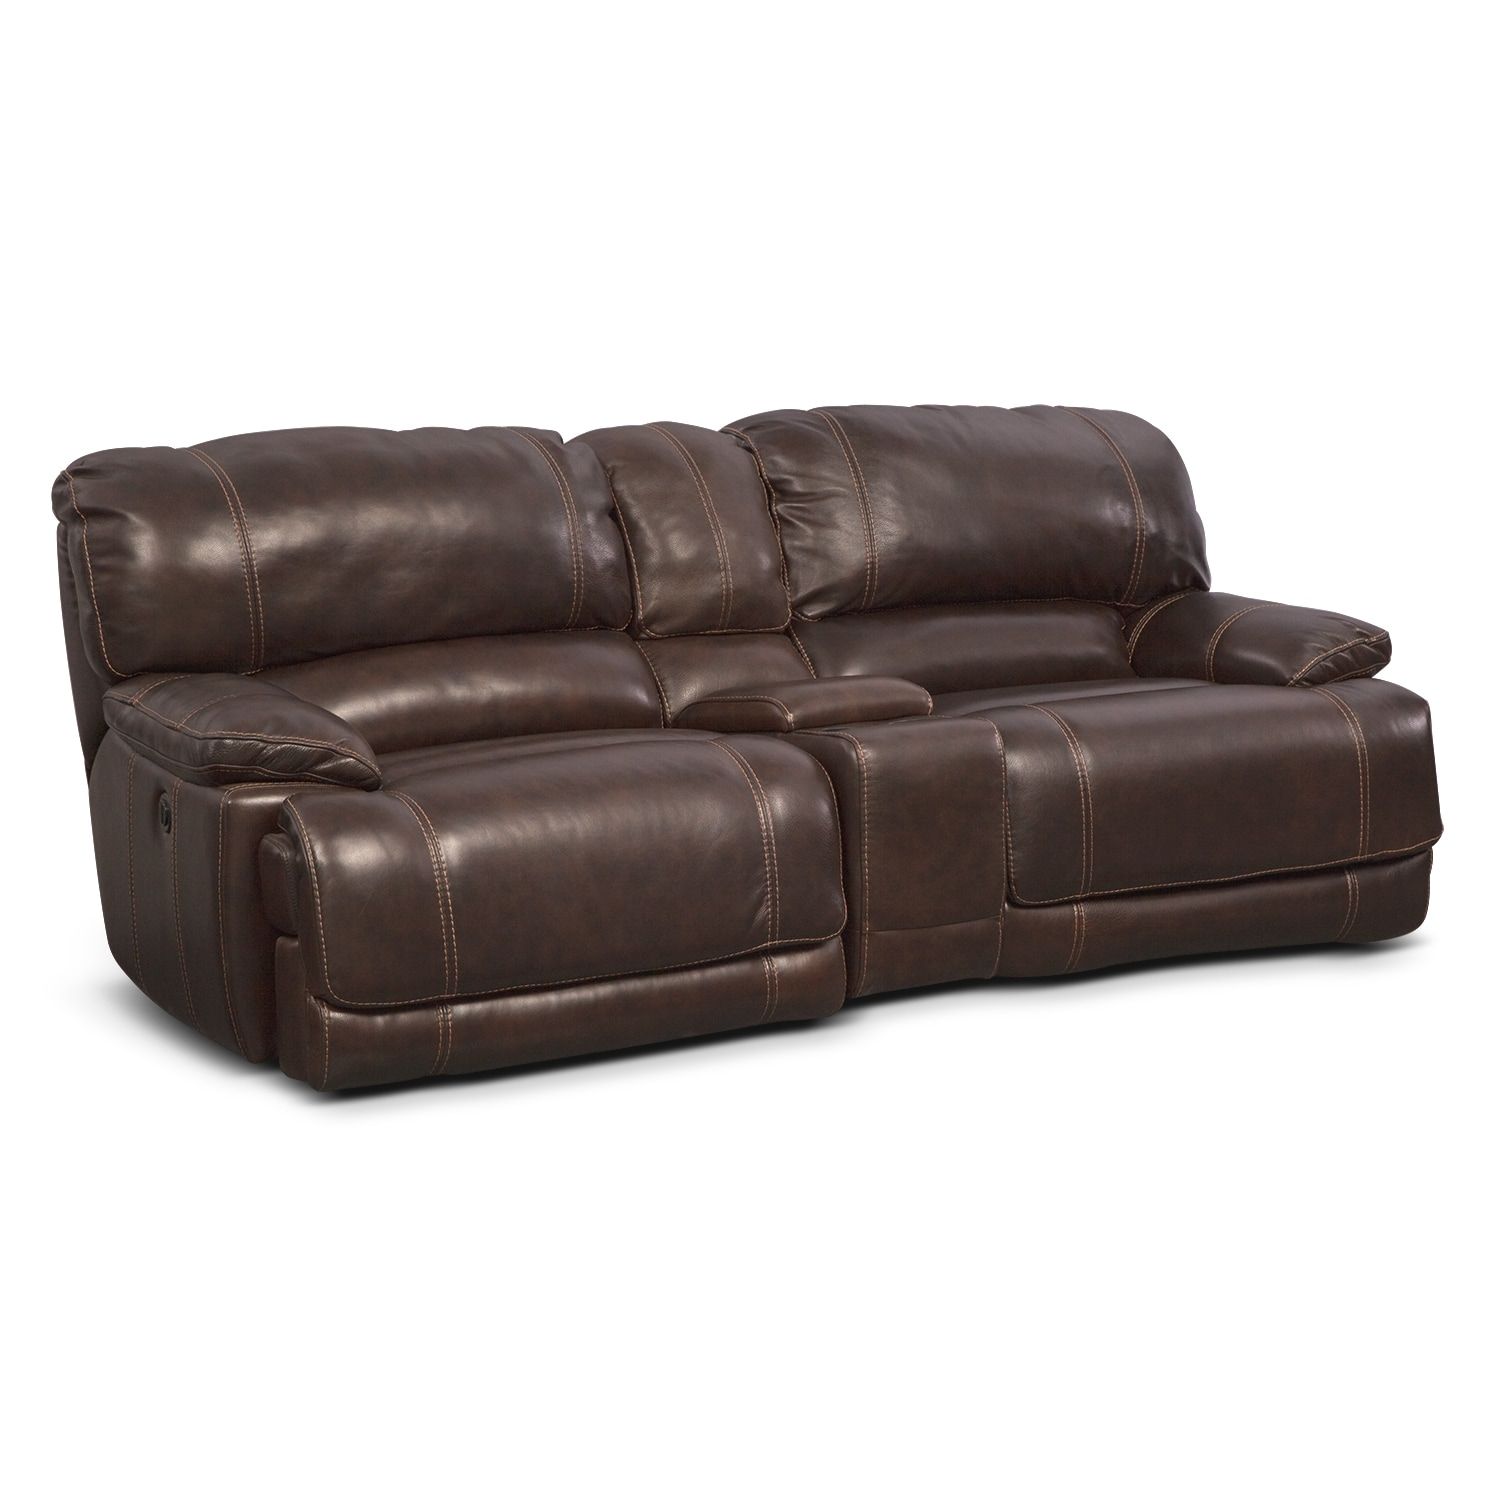 Charmant Living Room Furniture   St. Malo Power Reclining Sofa With Console   Brown